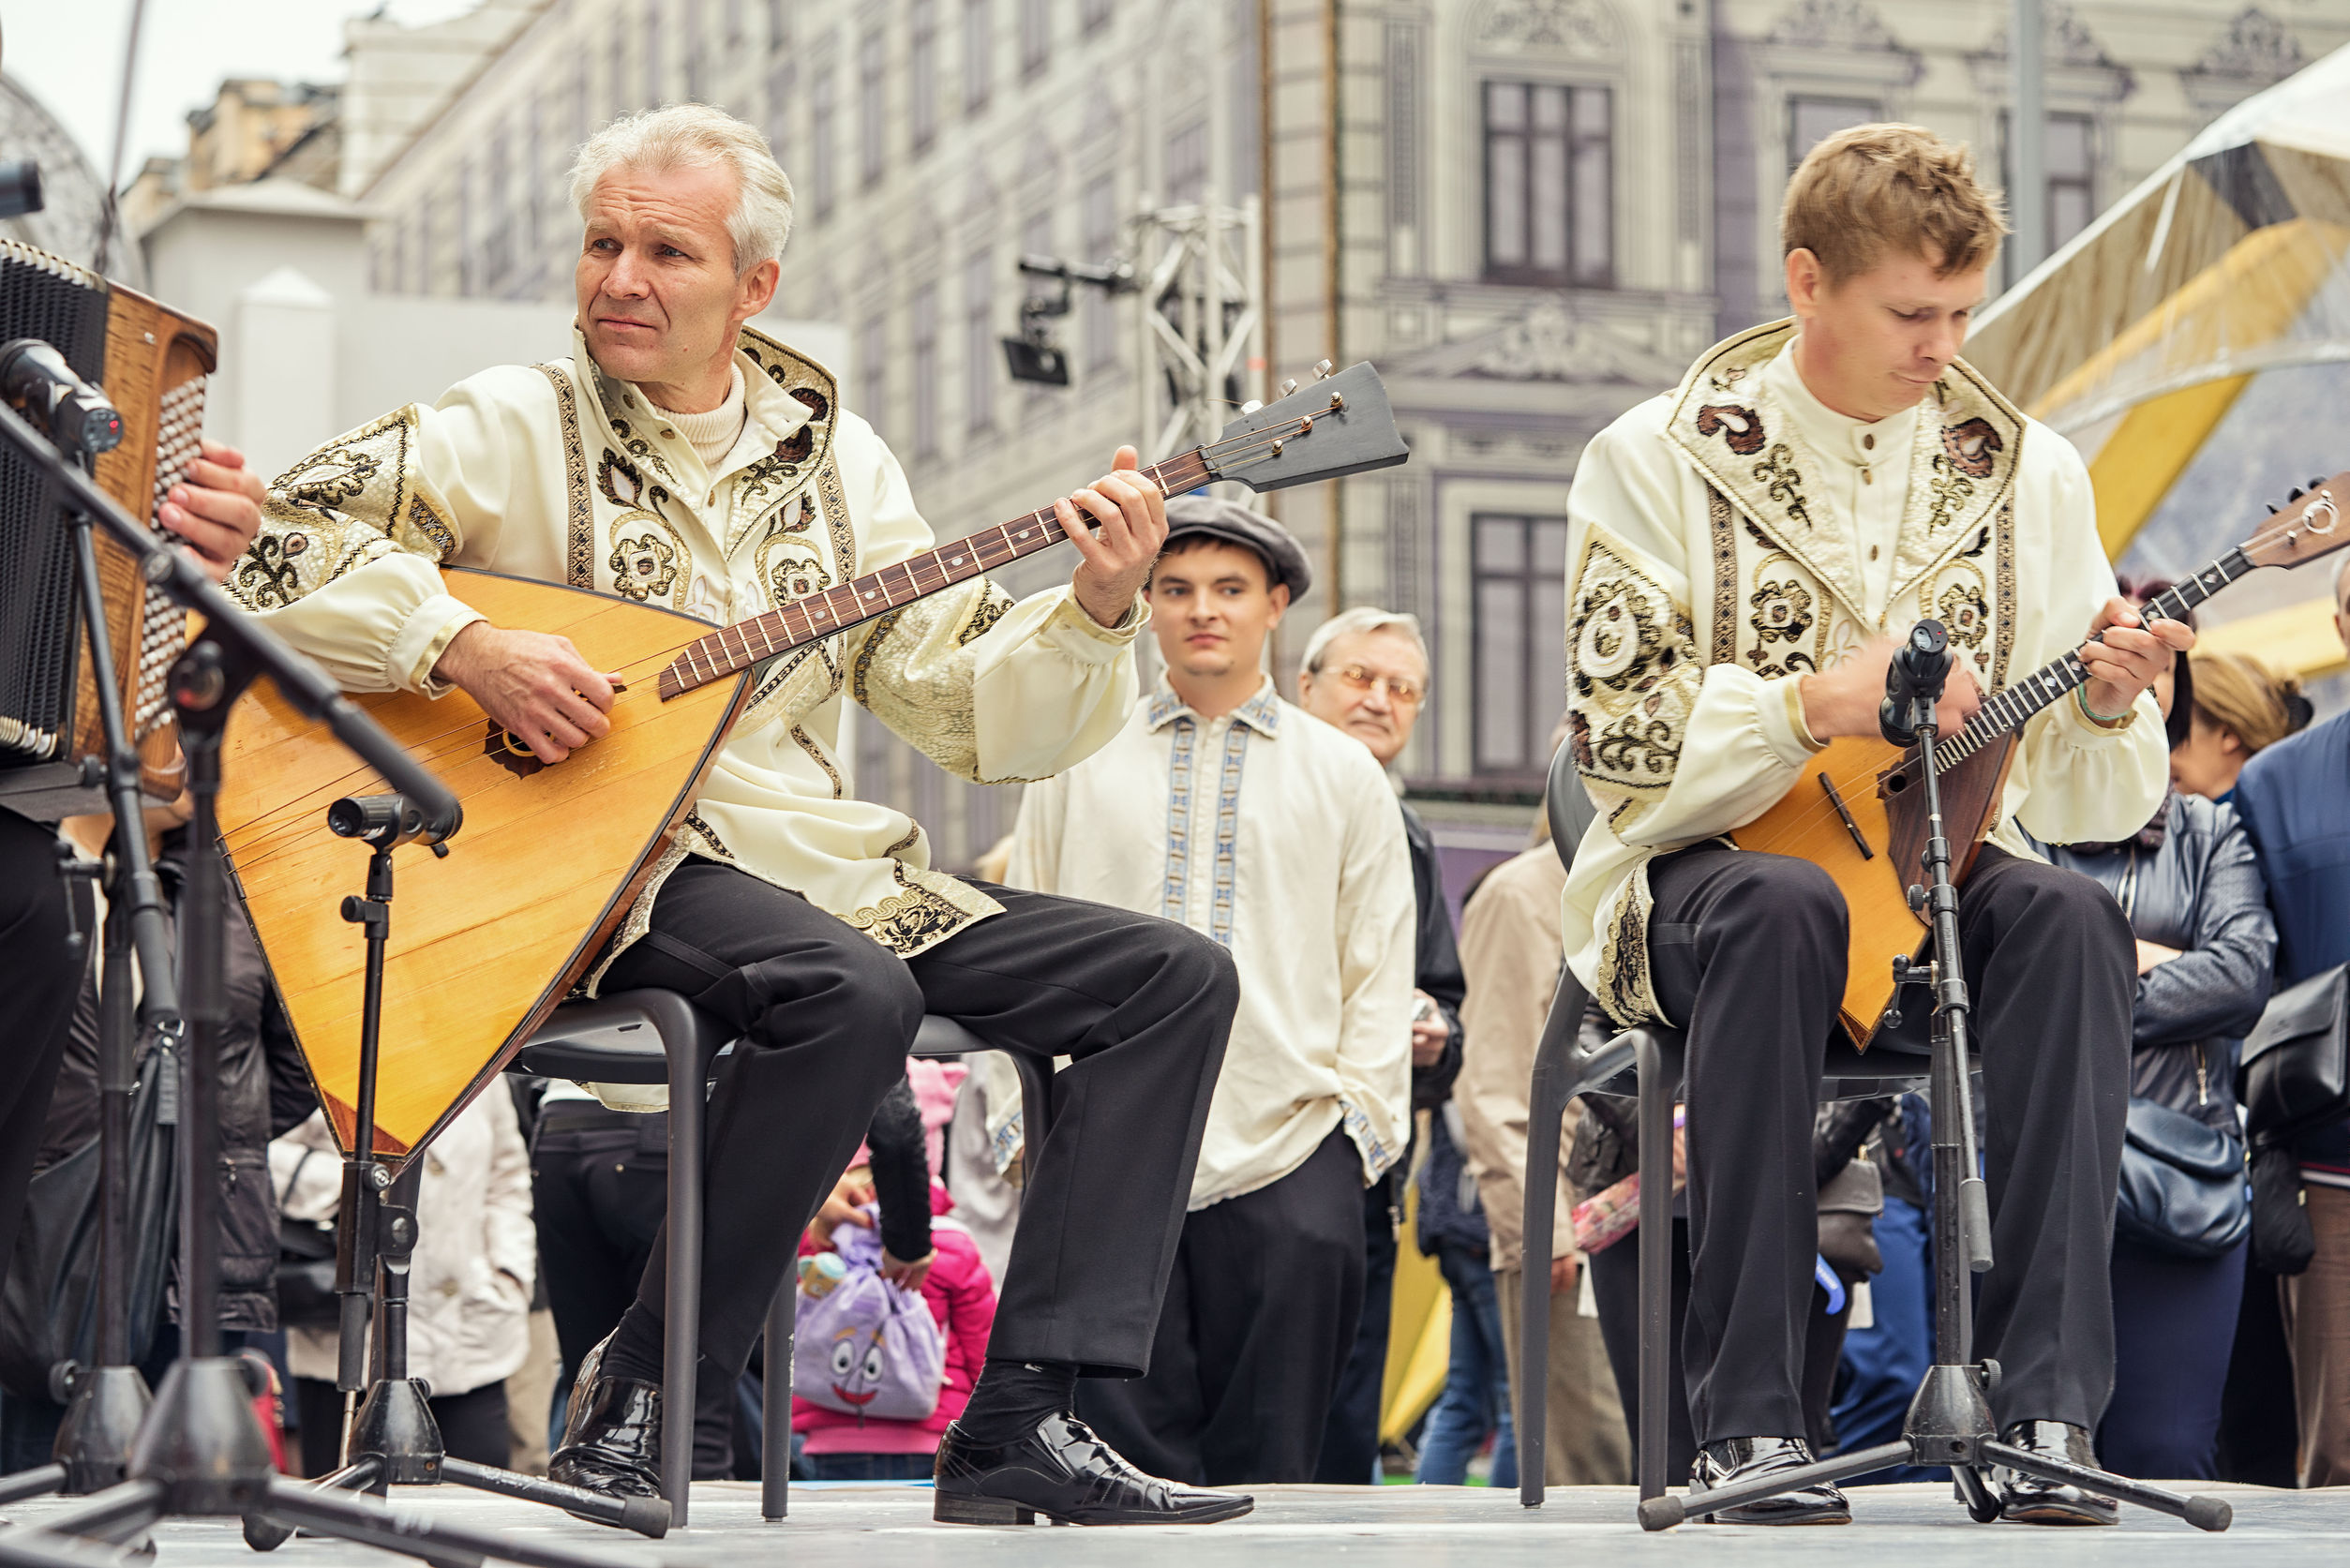 band performance for Moscow City Day celebration